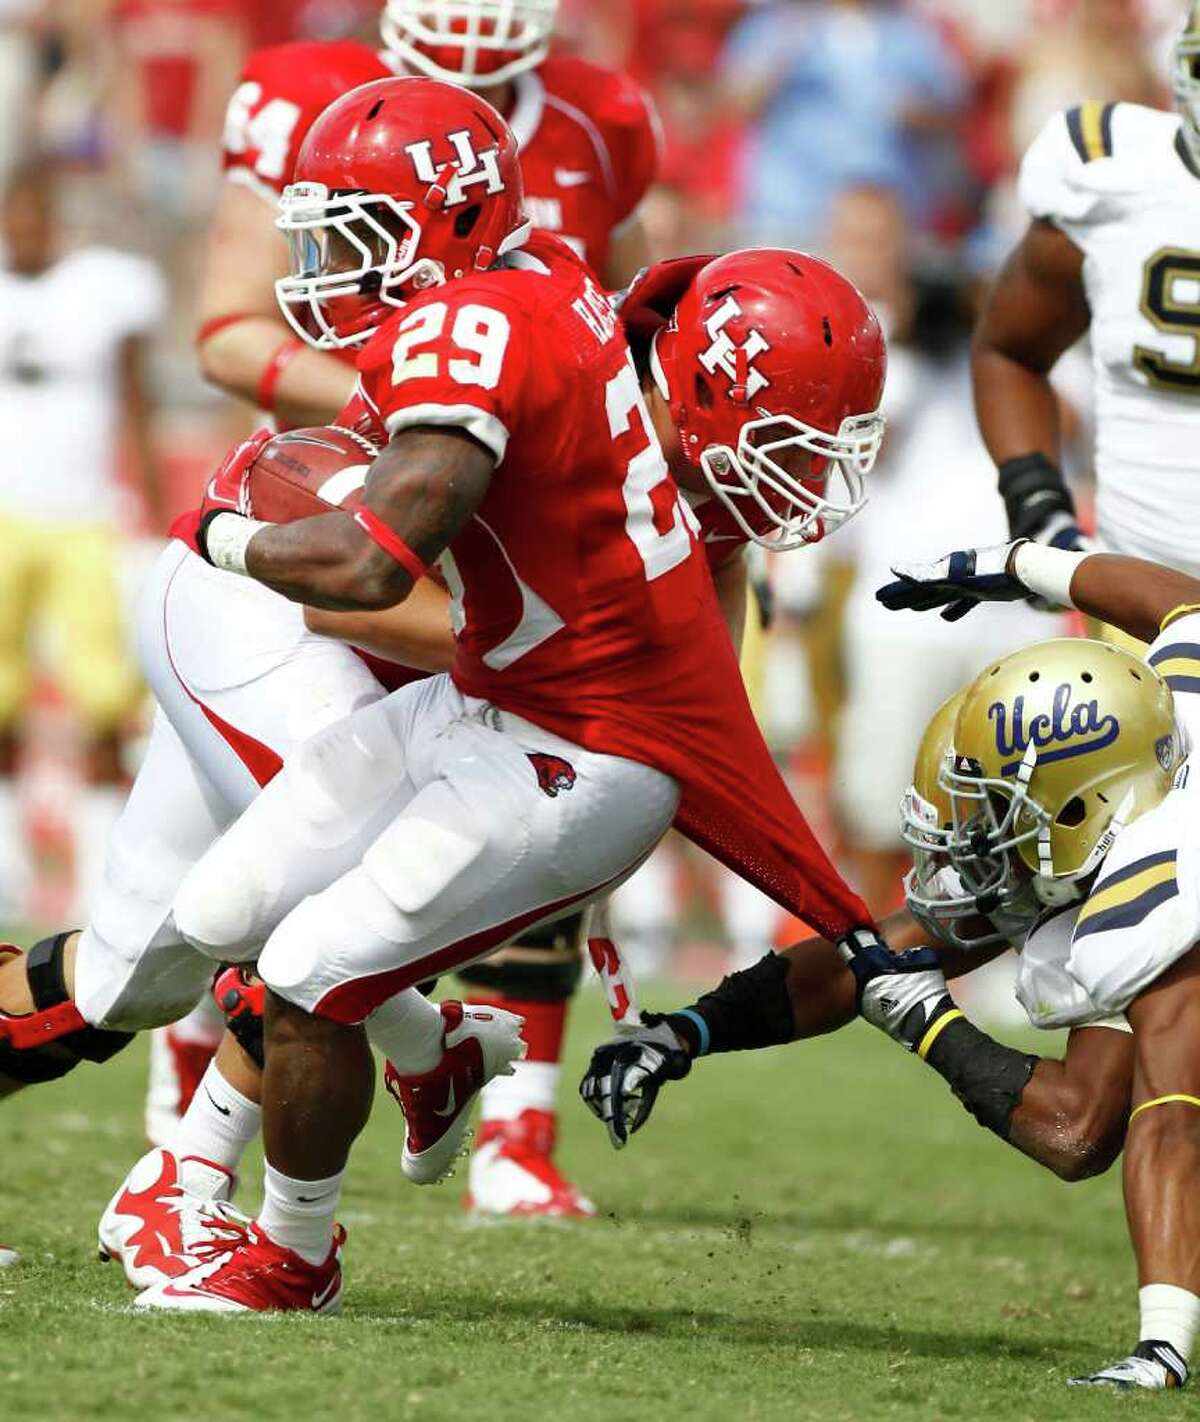 University of Houston running back Michael Hayes breaks through a tackle on his way to a touchdown.